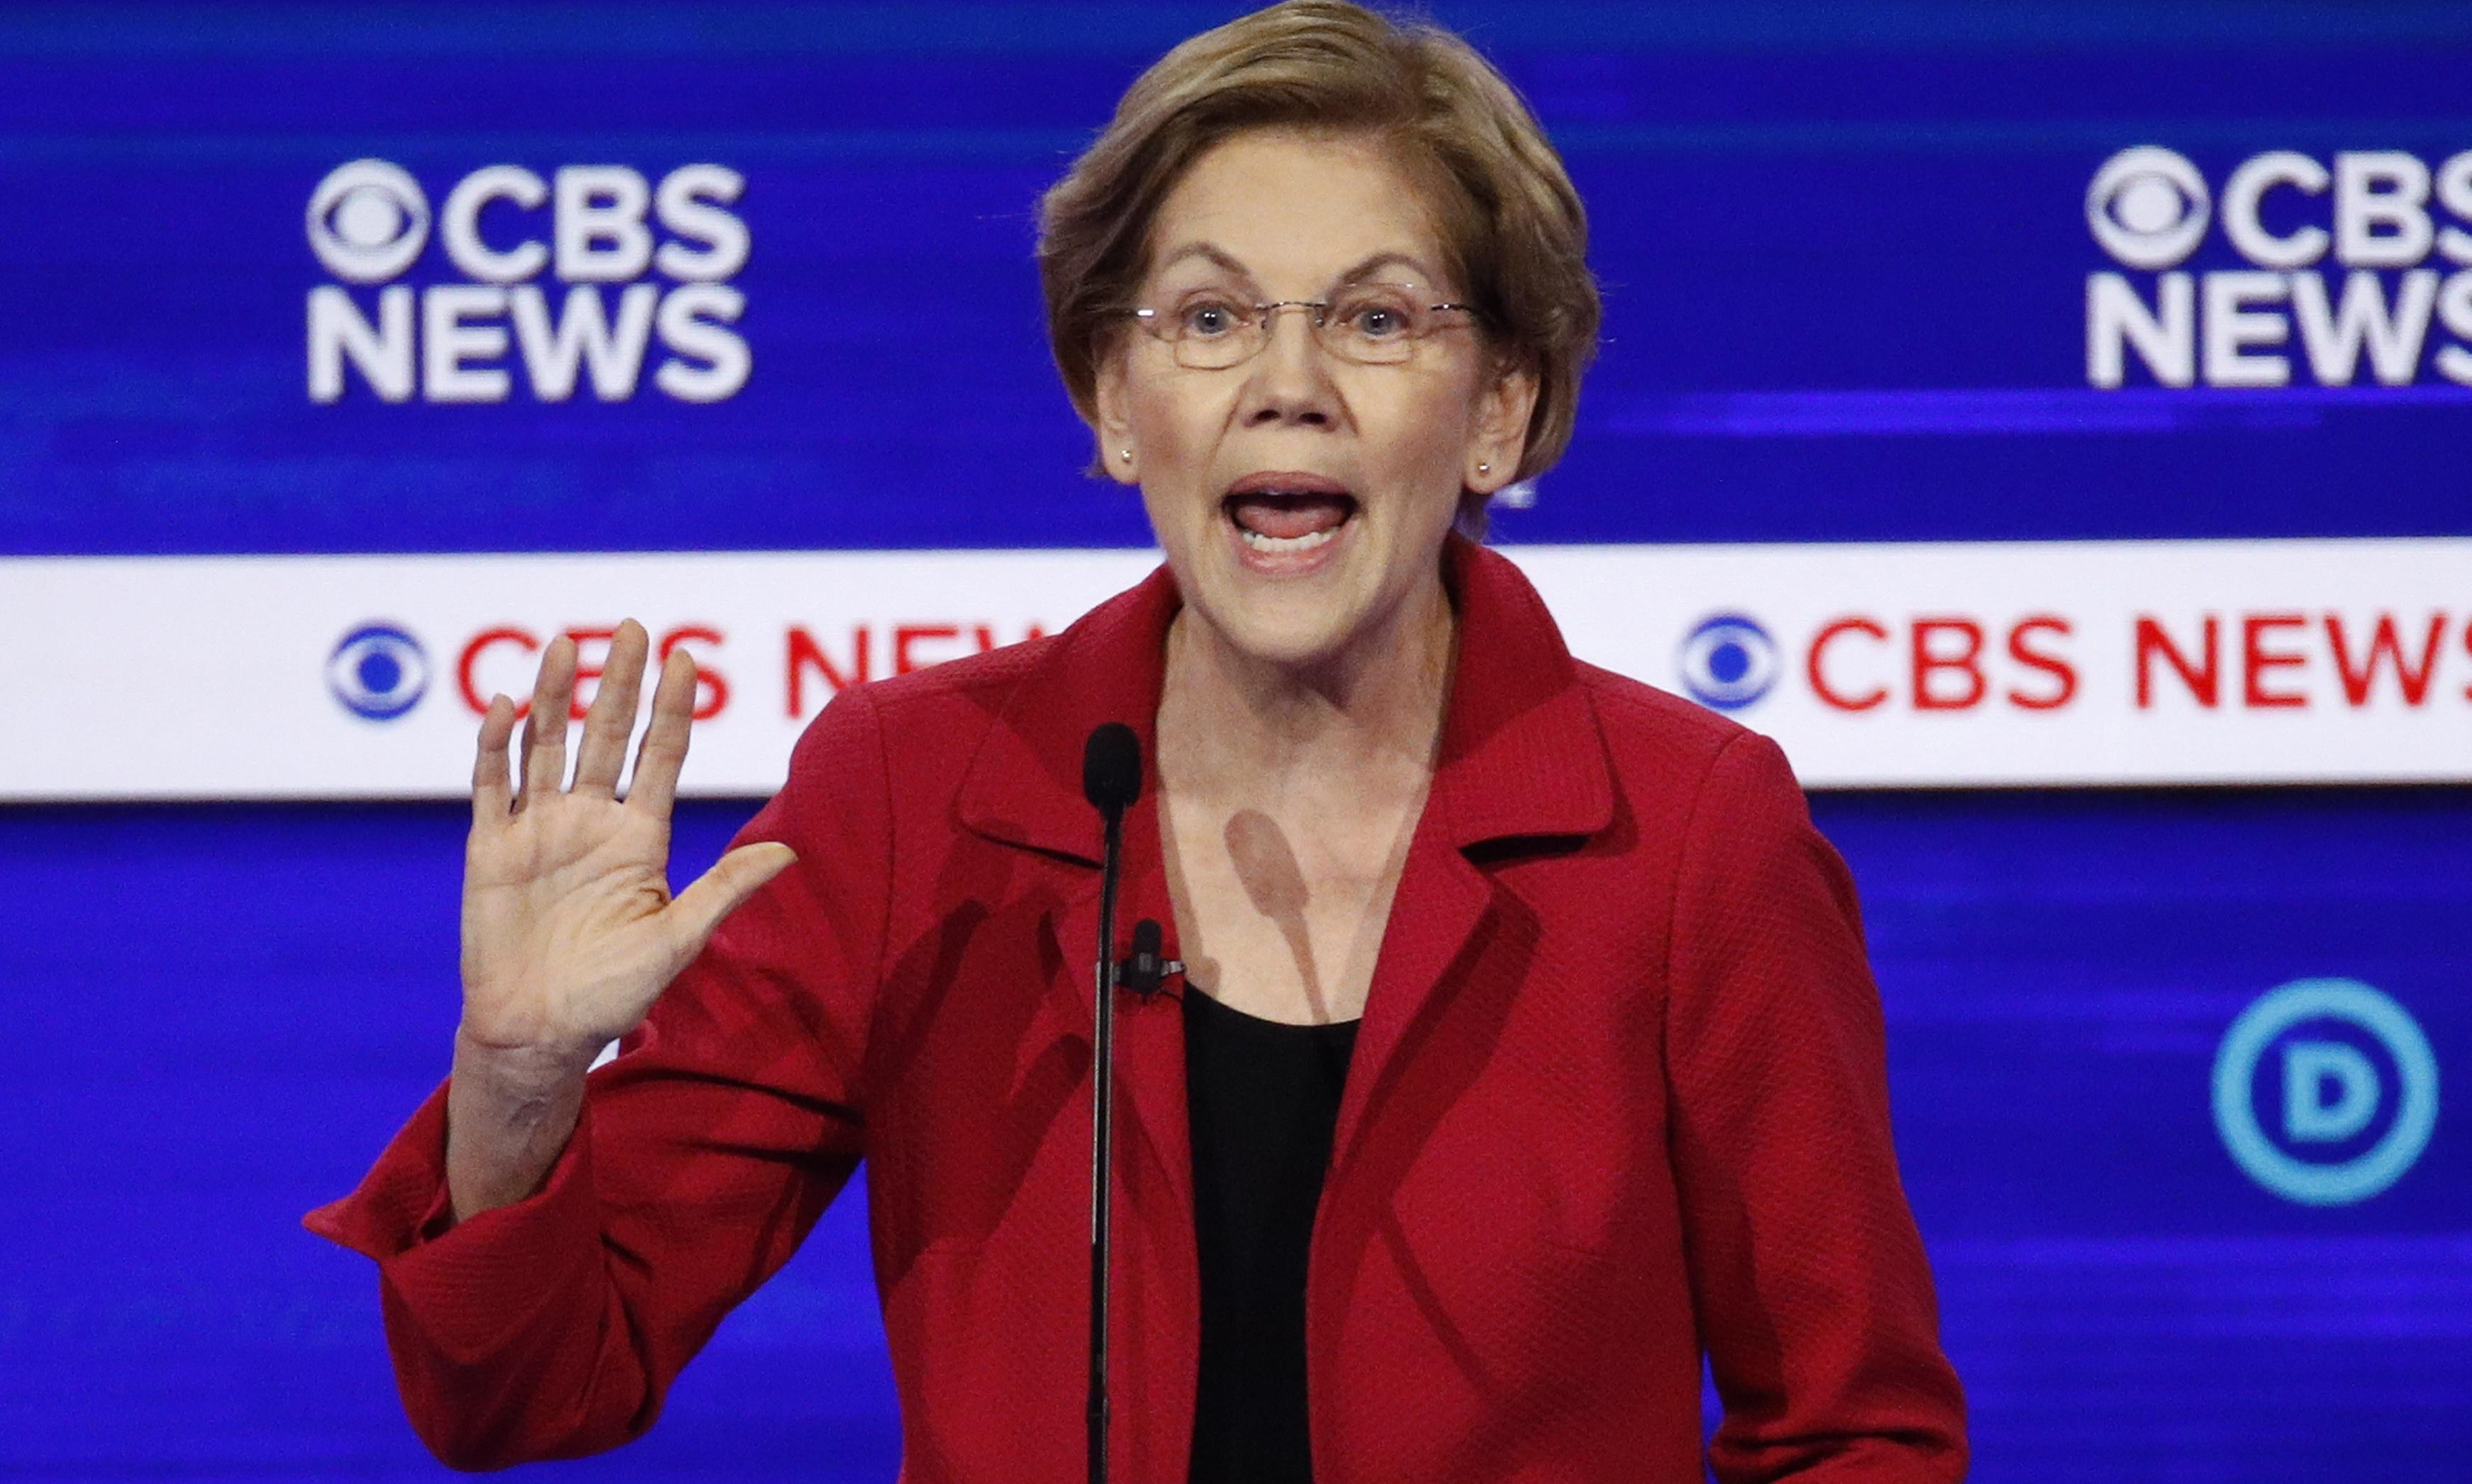 The Democratic debate was heavy on vitriol and light on substance